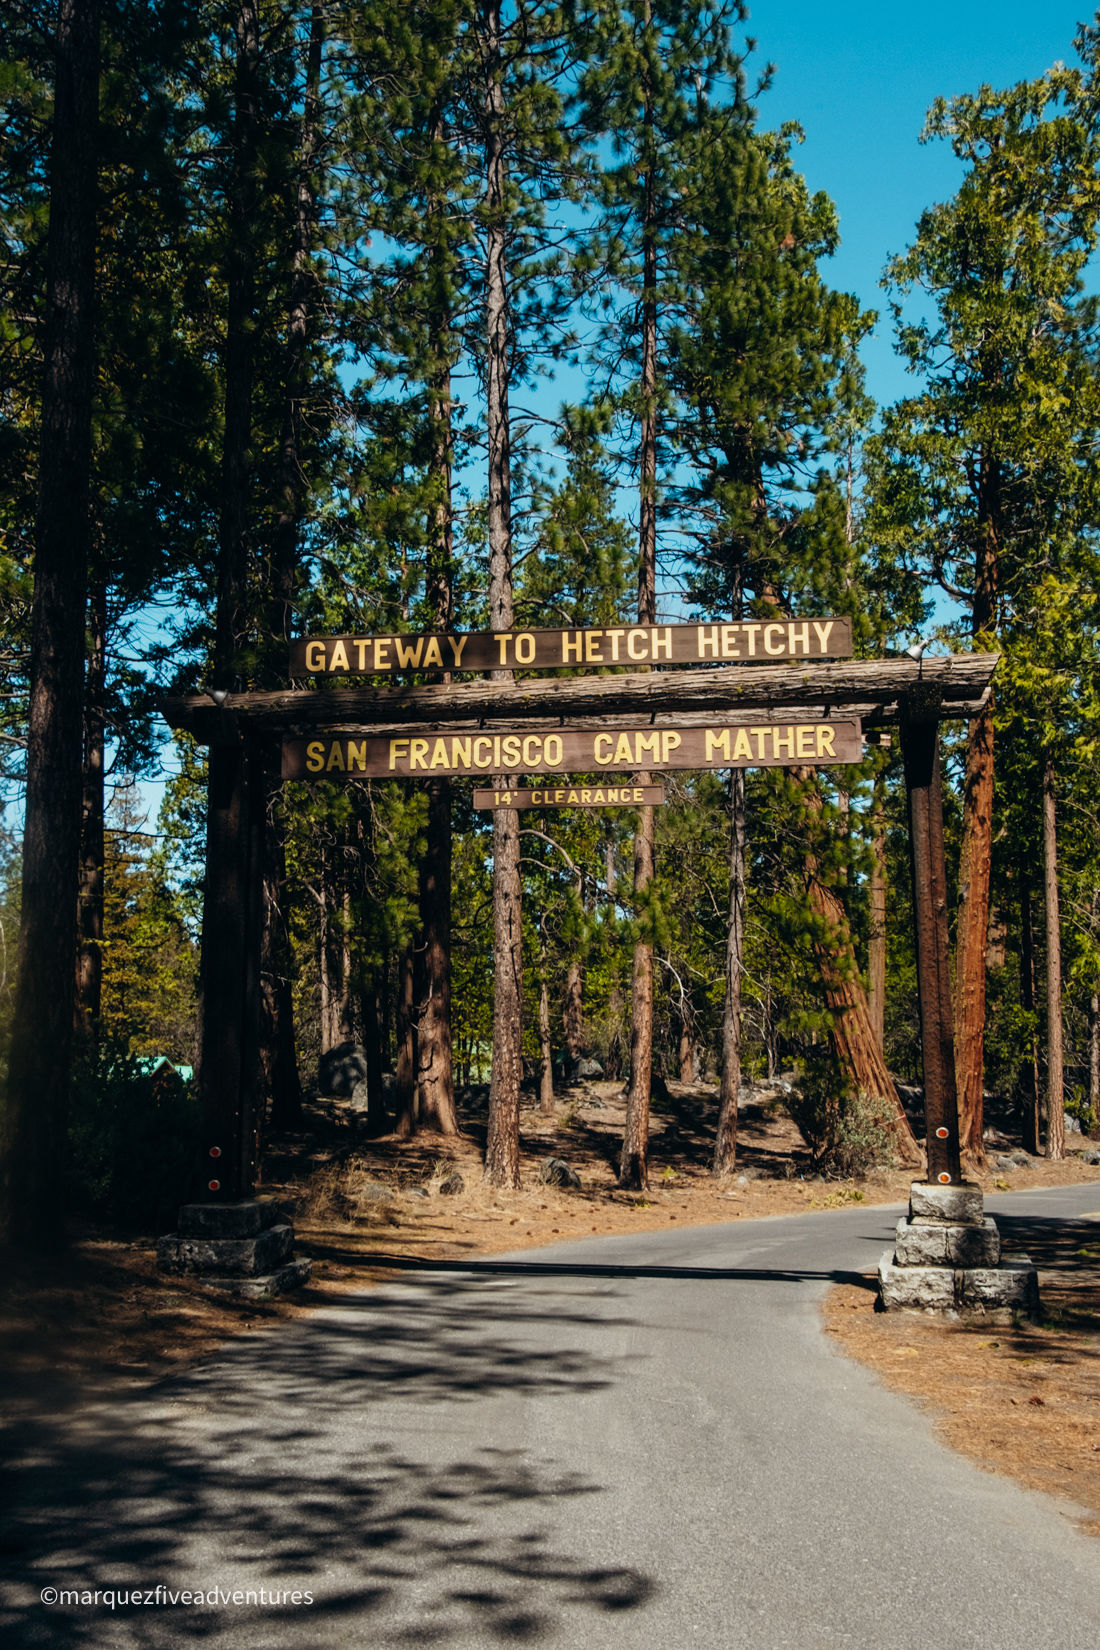 Gateway to the Hetch Hetchy. Yosemite National Park.